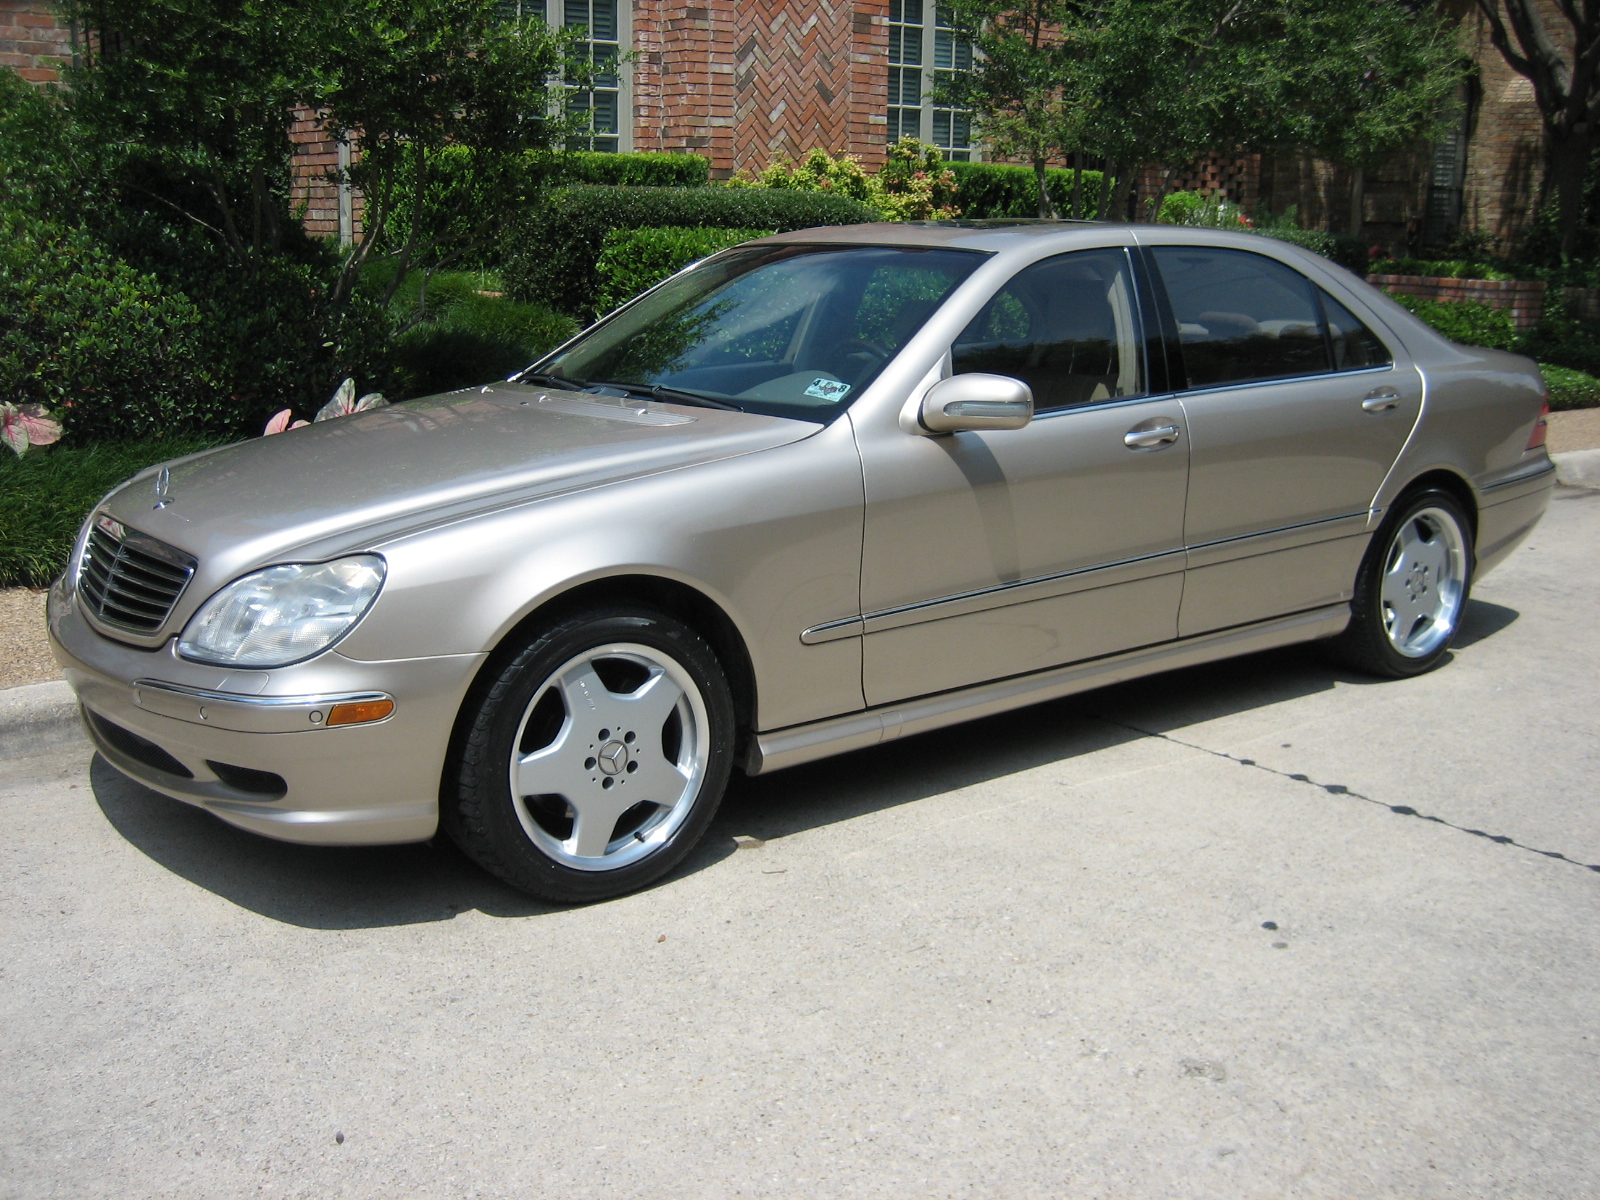 2005 mercedes benz s class overview cargurus for 2001 mercedes benz s500 specs